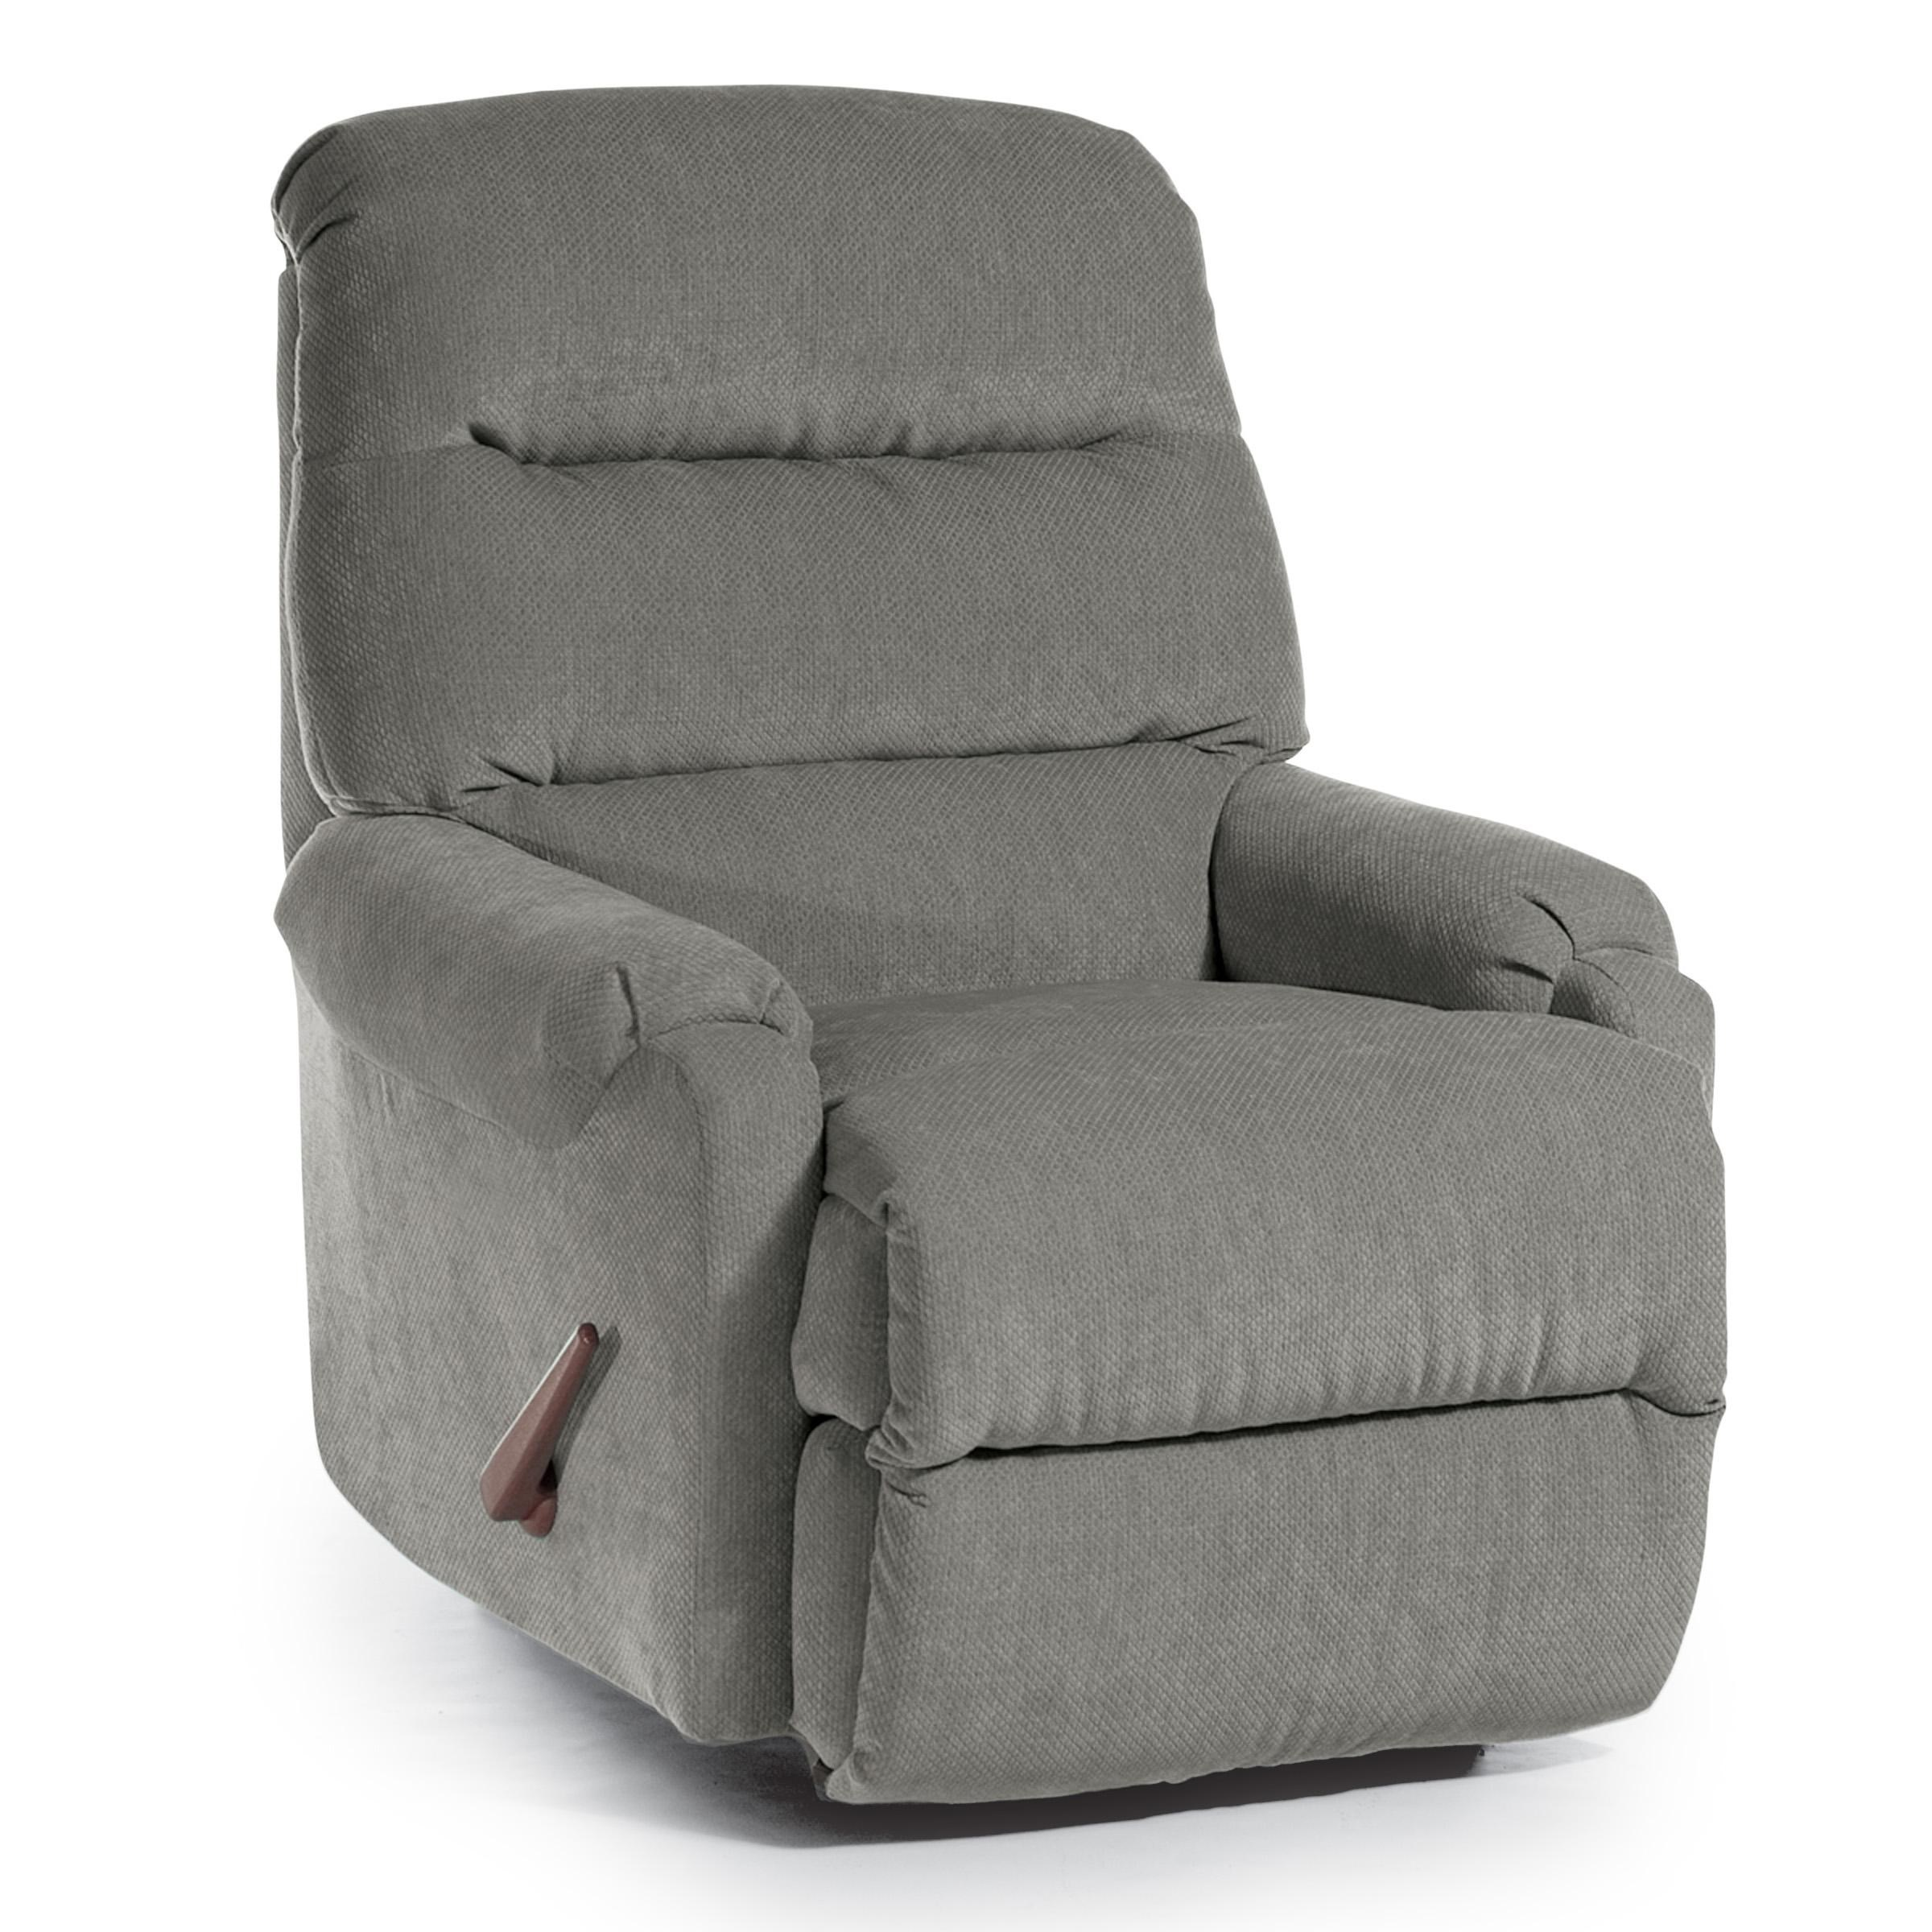 Swivel Rocker Recliner Chair Best Home Furnishings Medium Recliners 9aw69 Sedgefield Swivel